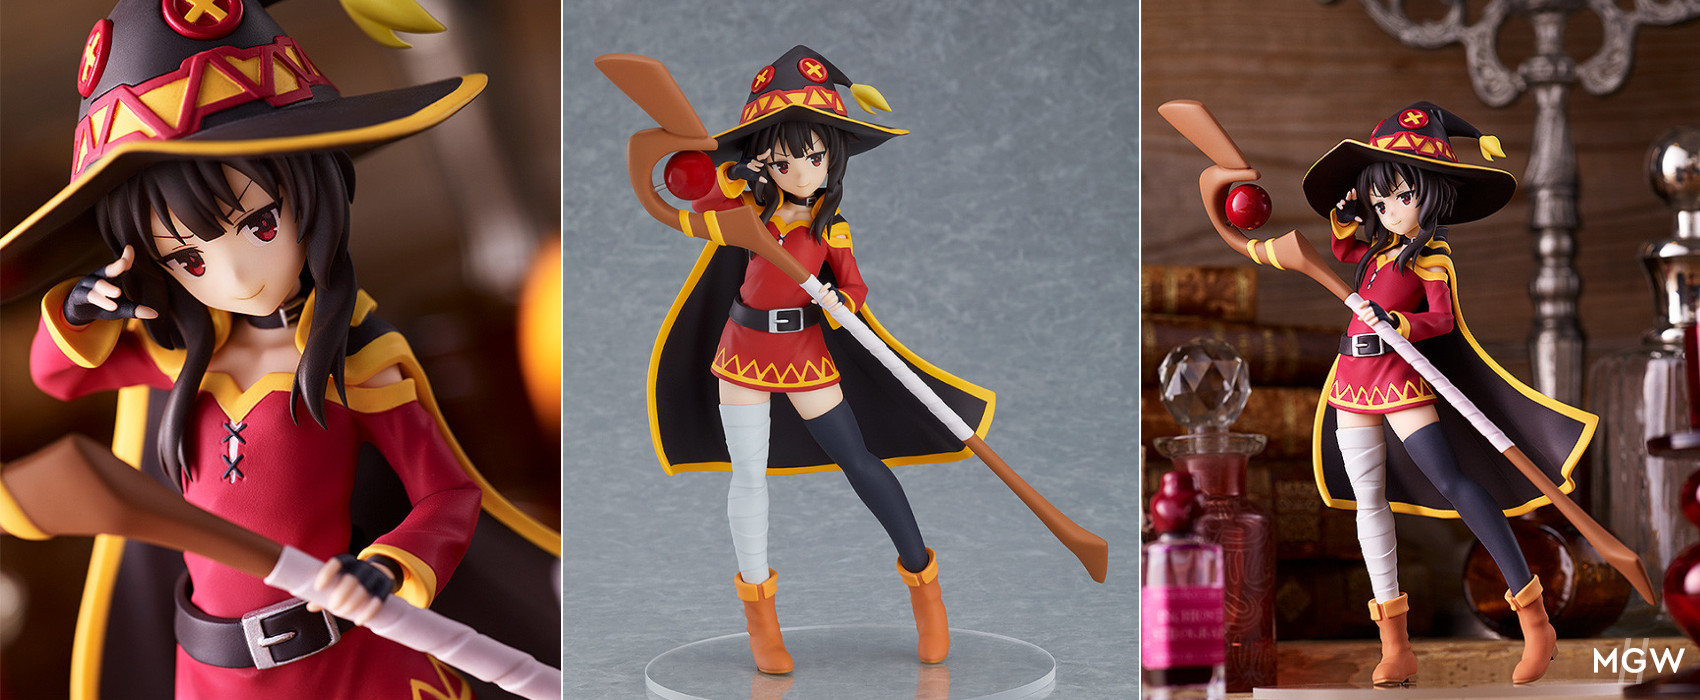 POP UP PARADE Megumin by Max Factory from KonoSuba